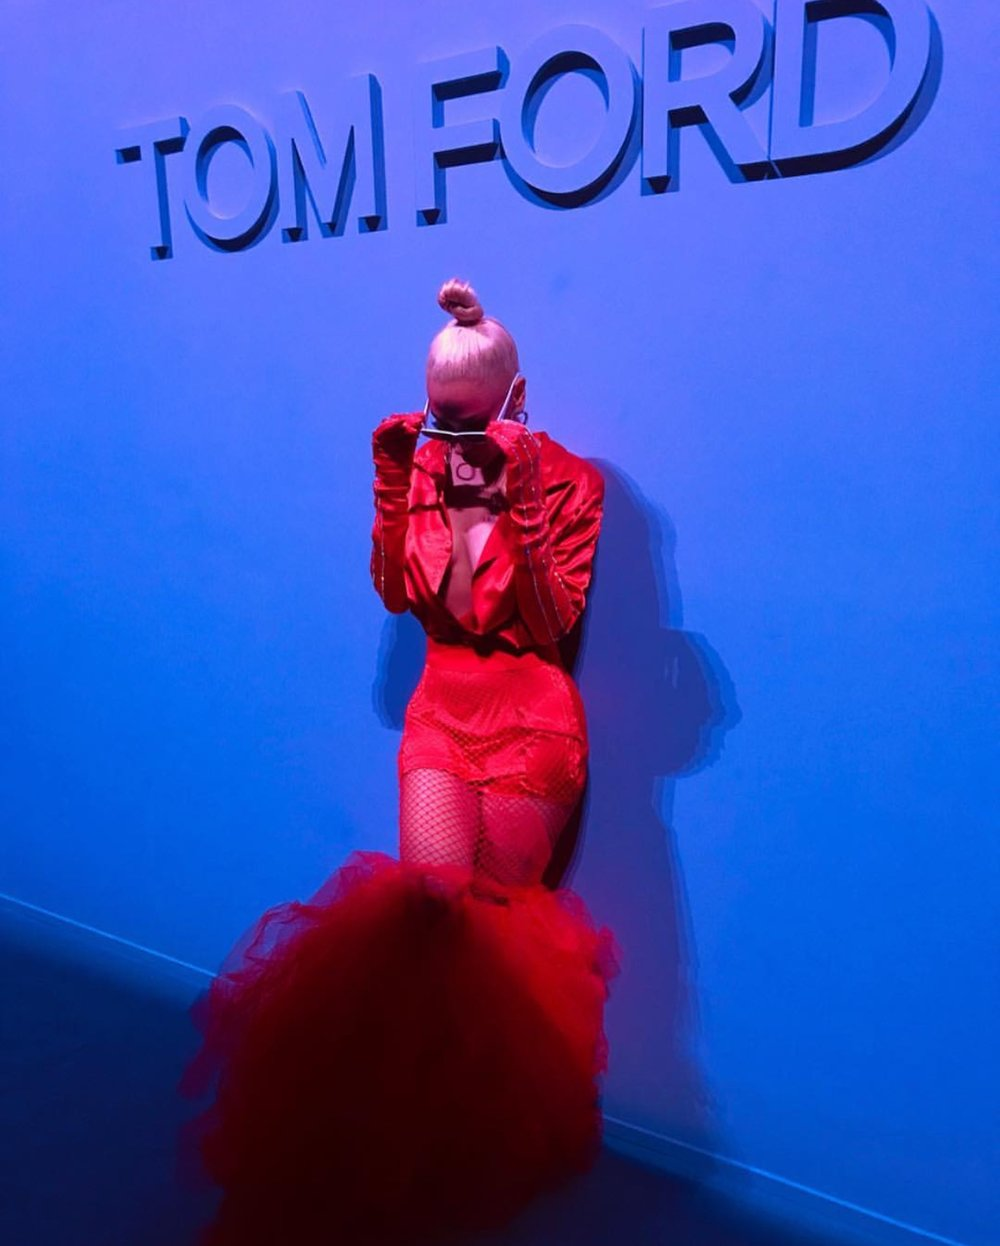 NYFW: TOM FORD, FEATURED IN MARIE CLAIRE MAGAZINE